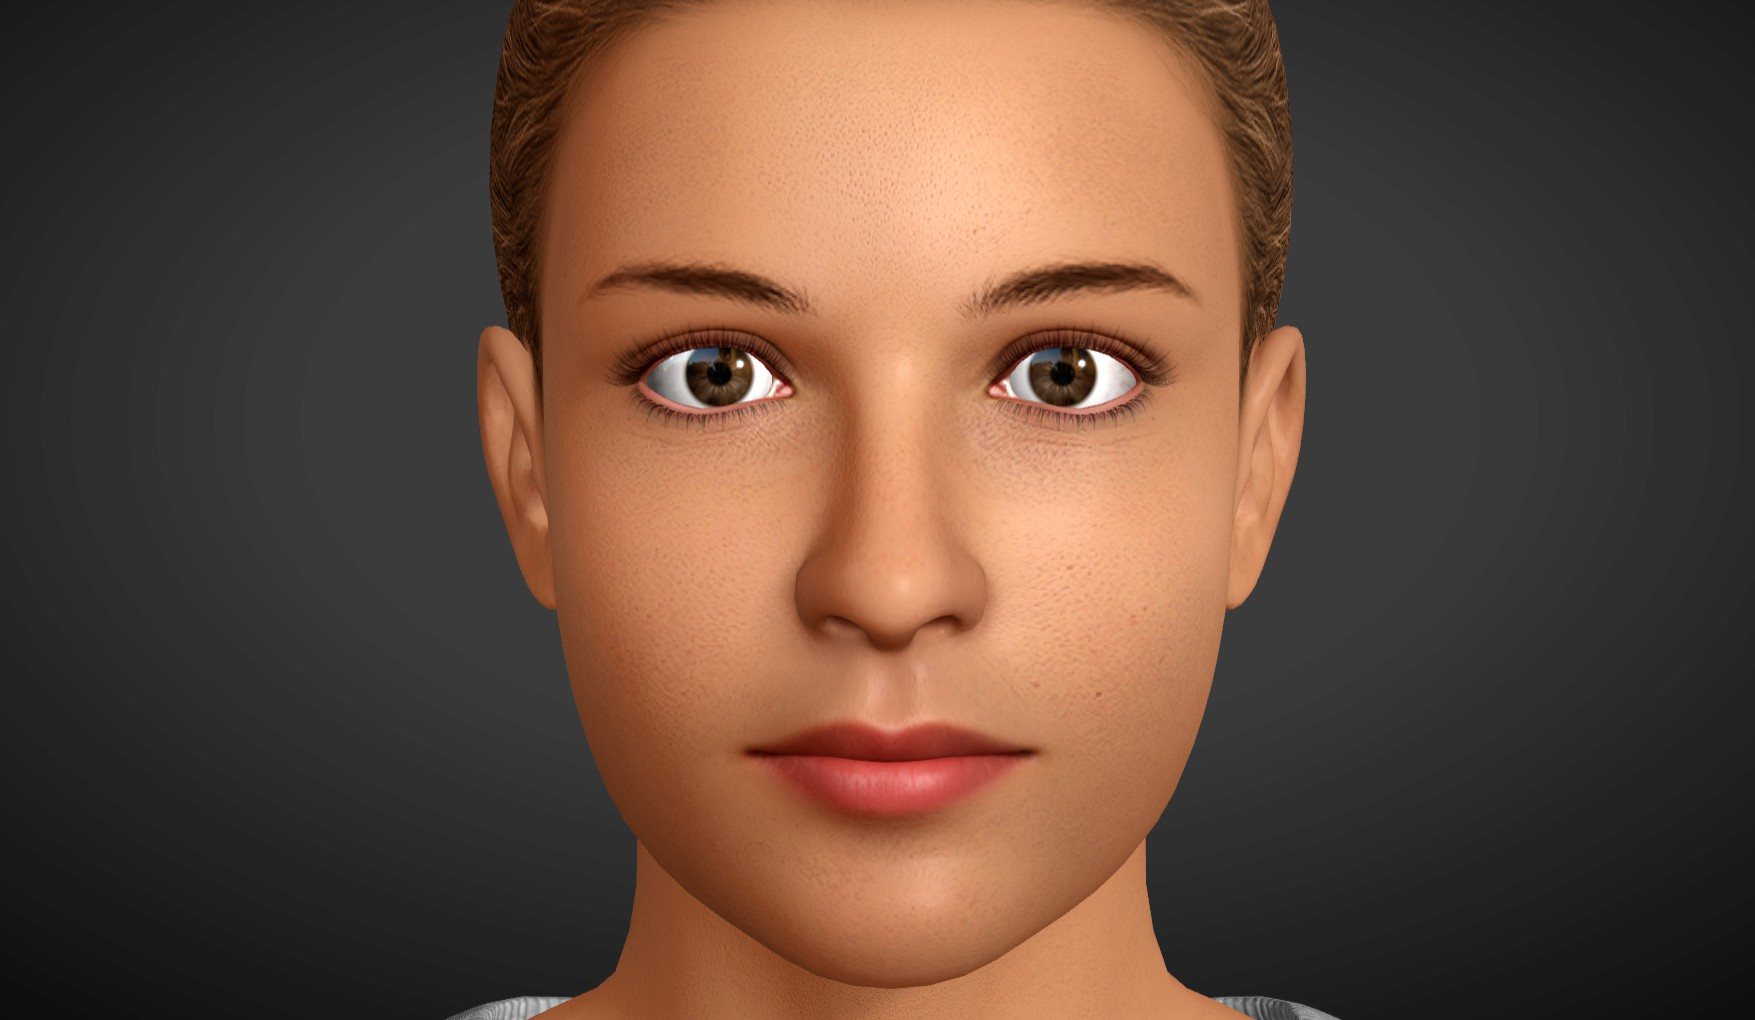 Determining the Characteristics of Preferred Virtual Faces Using an Avatar Generator